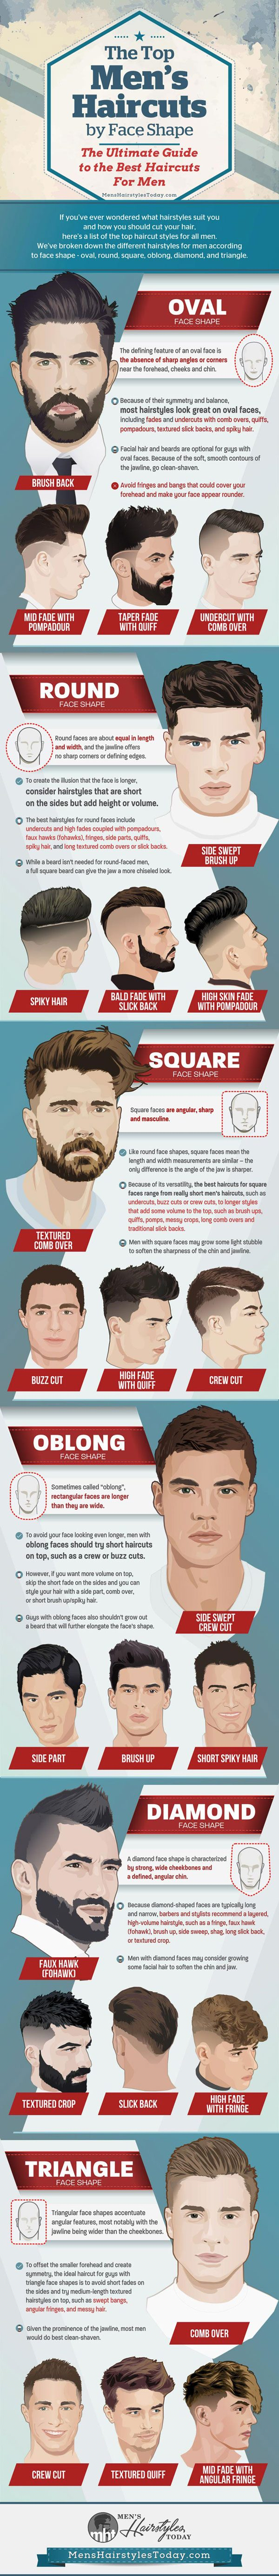 Coolest Men\'s Hairstyles To Get in 2018 By Face Shape « The ...